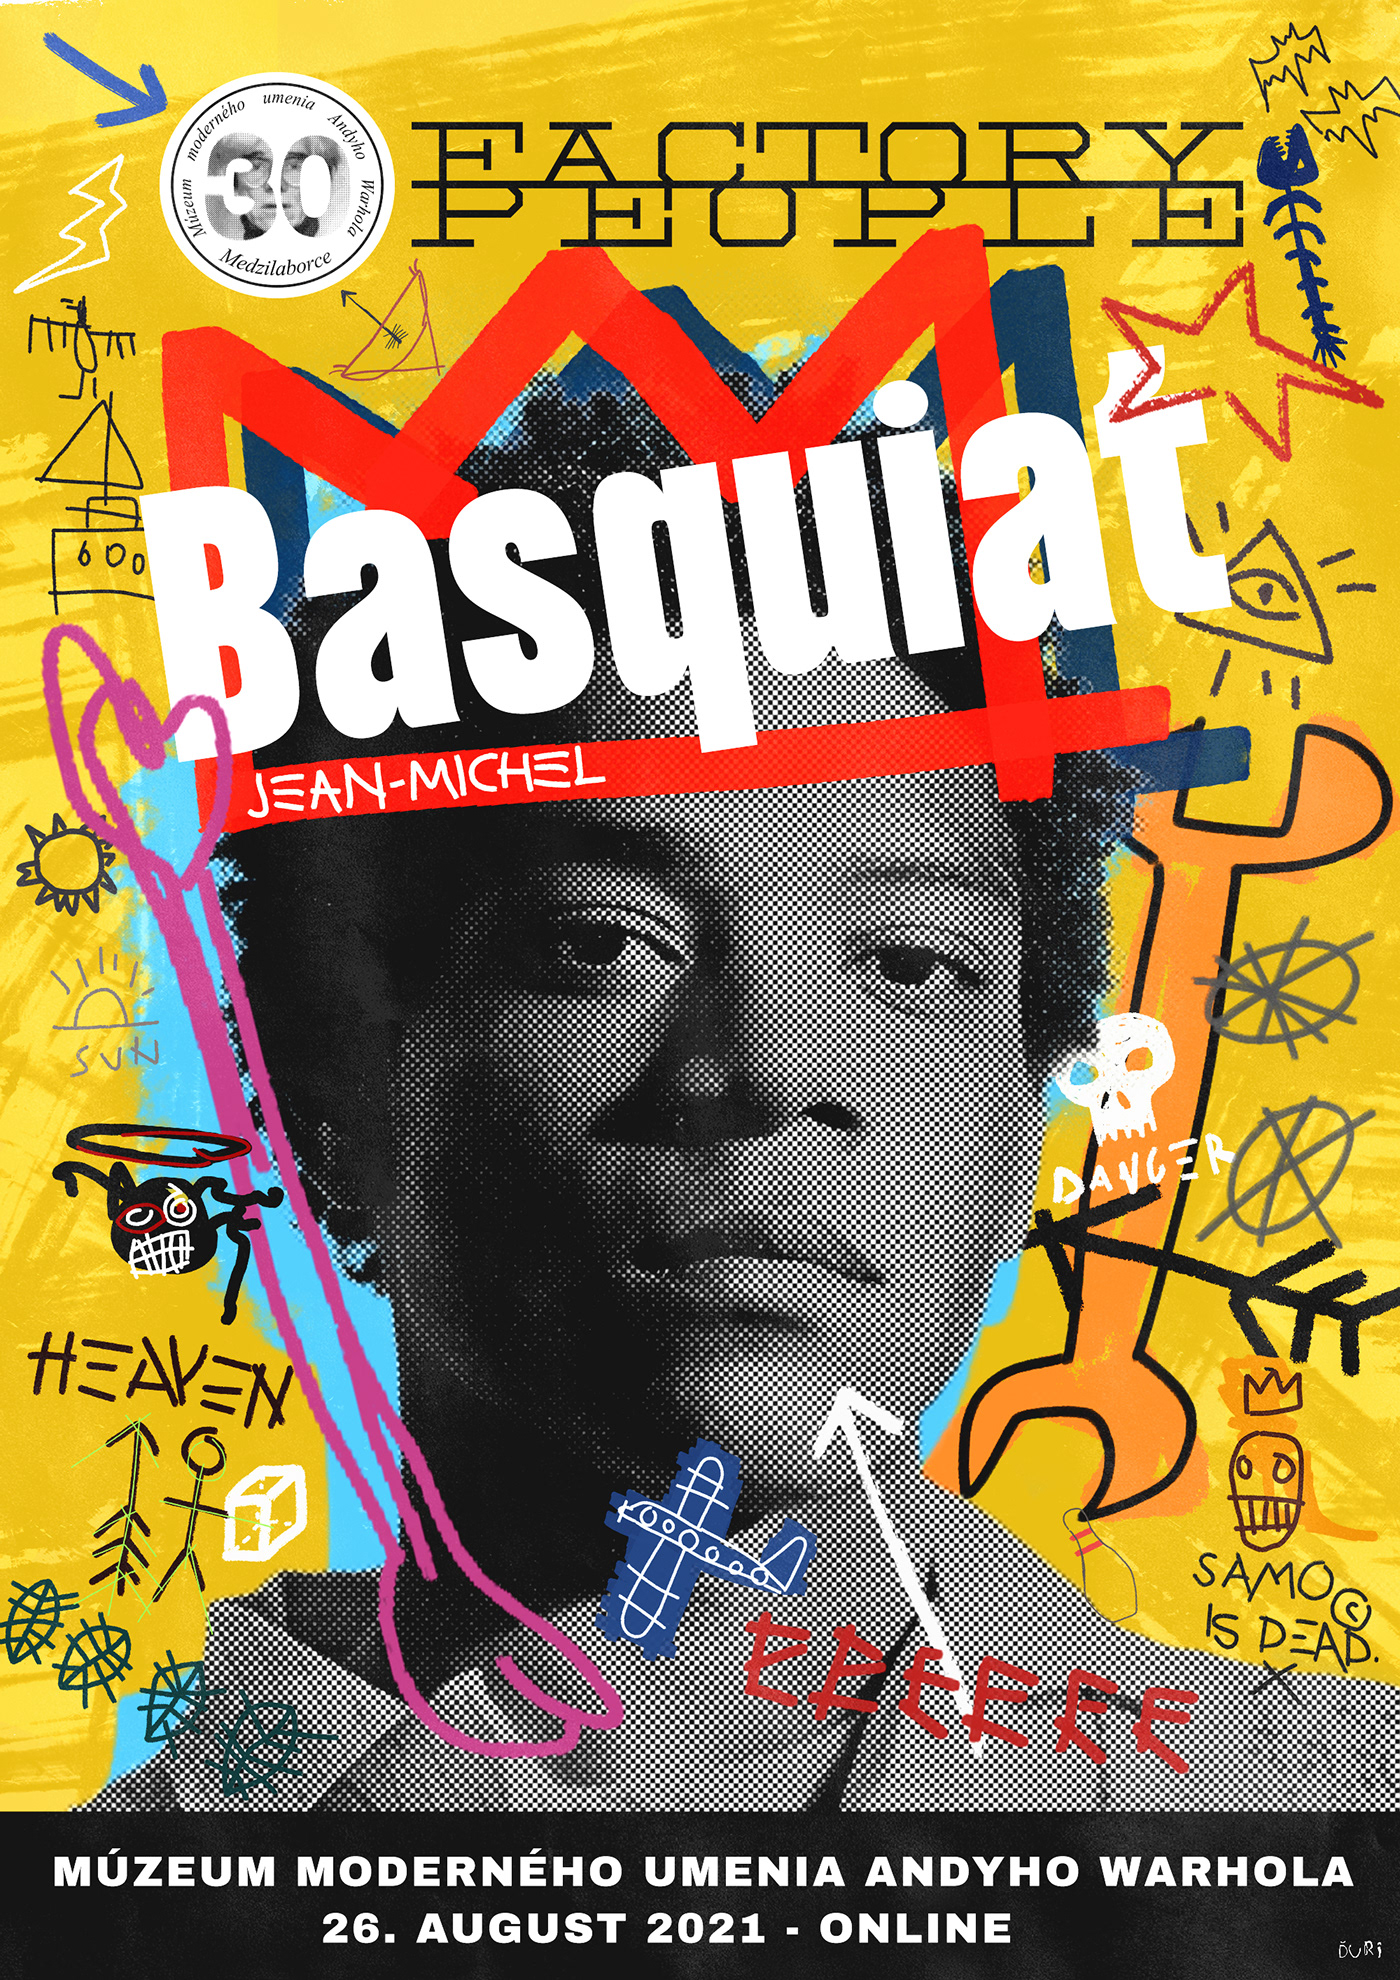 Andy Warhol andy warhol museum Basquiat design humenne museum of art popart poster print warhol